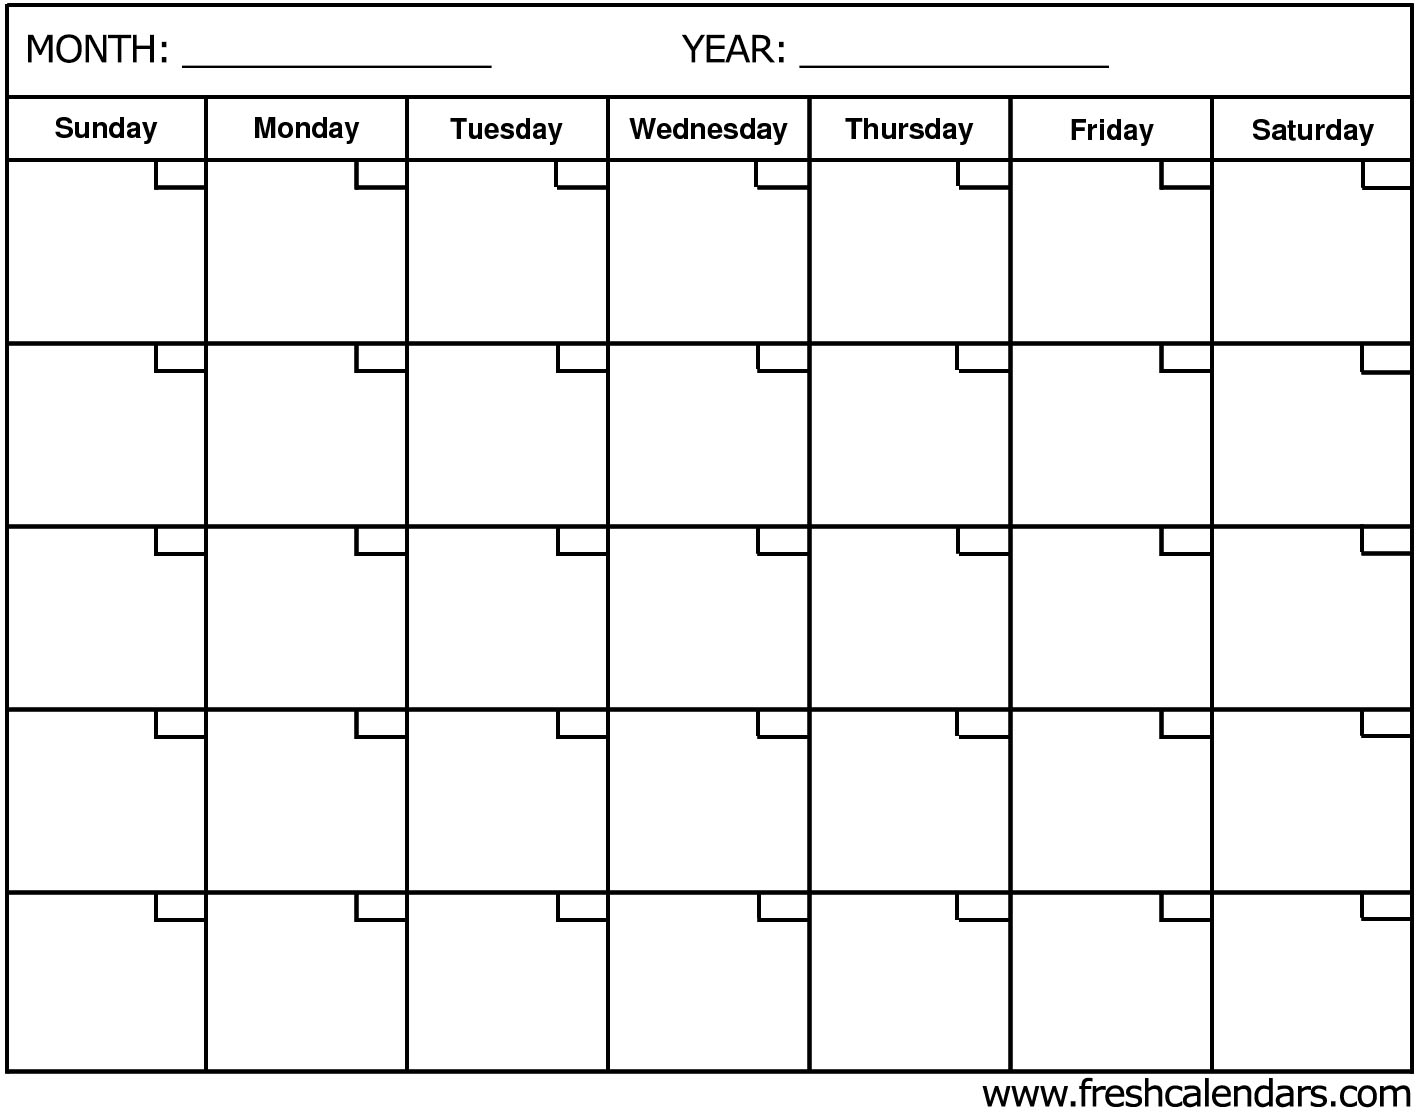 Templates of Blank Calendar with Month and Year